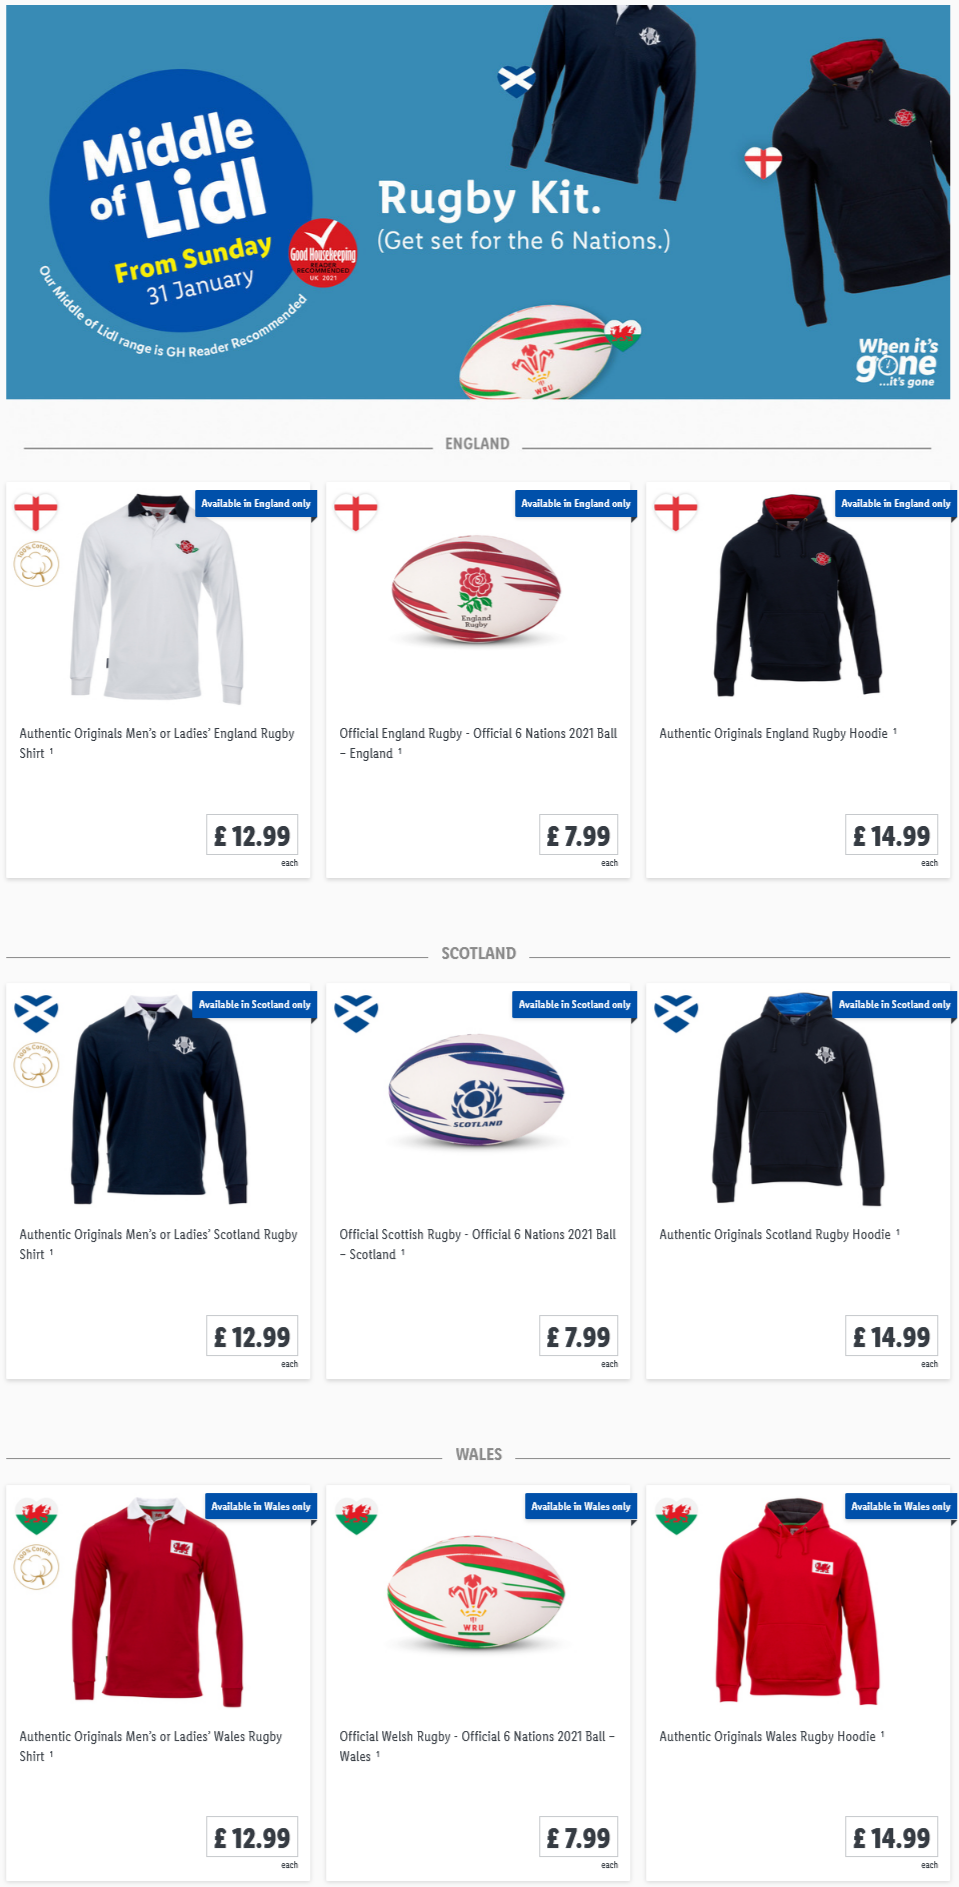 Shopping Rugby Kit at Lidl From Sunday, 31st January 2021